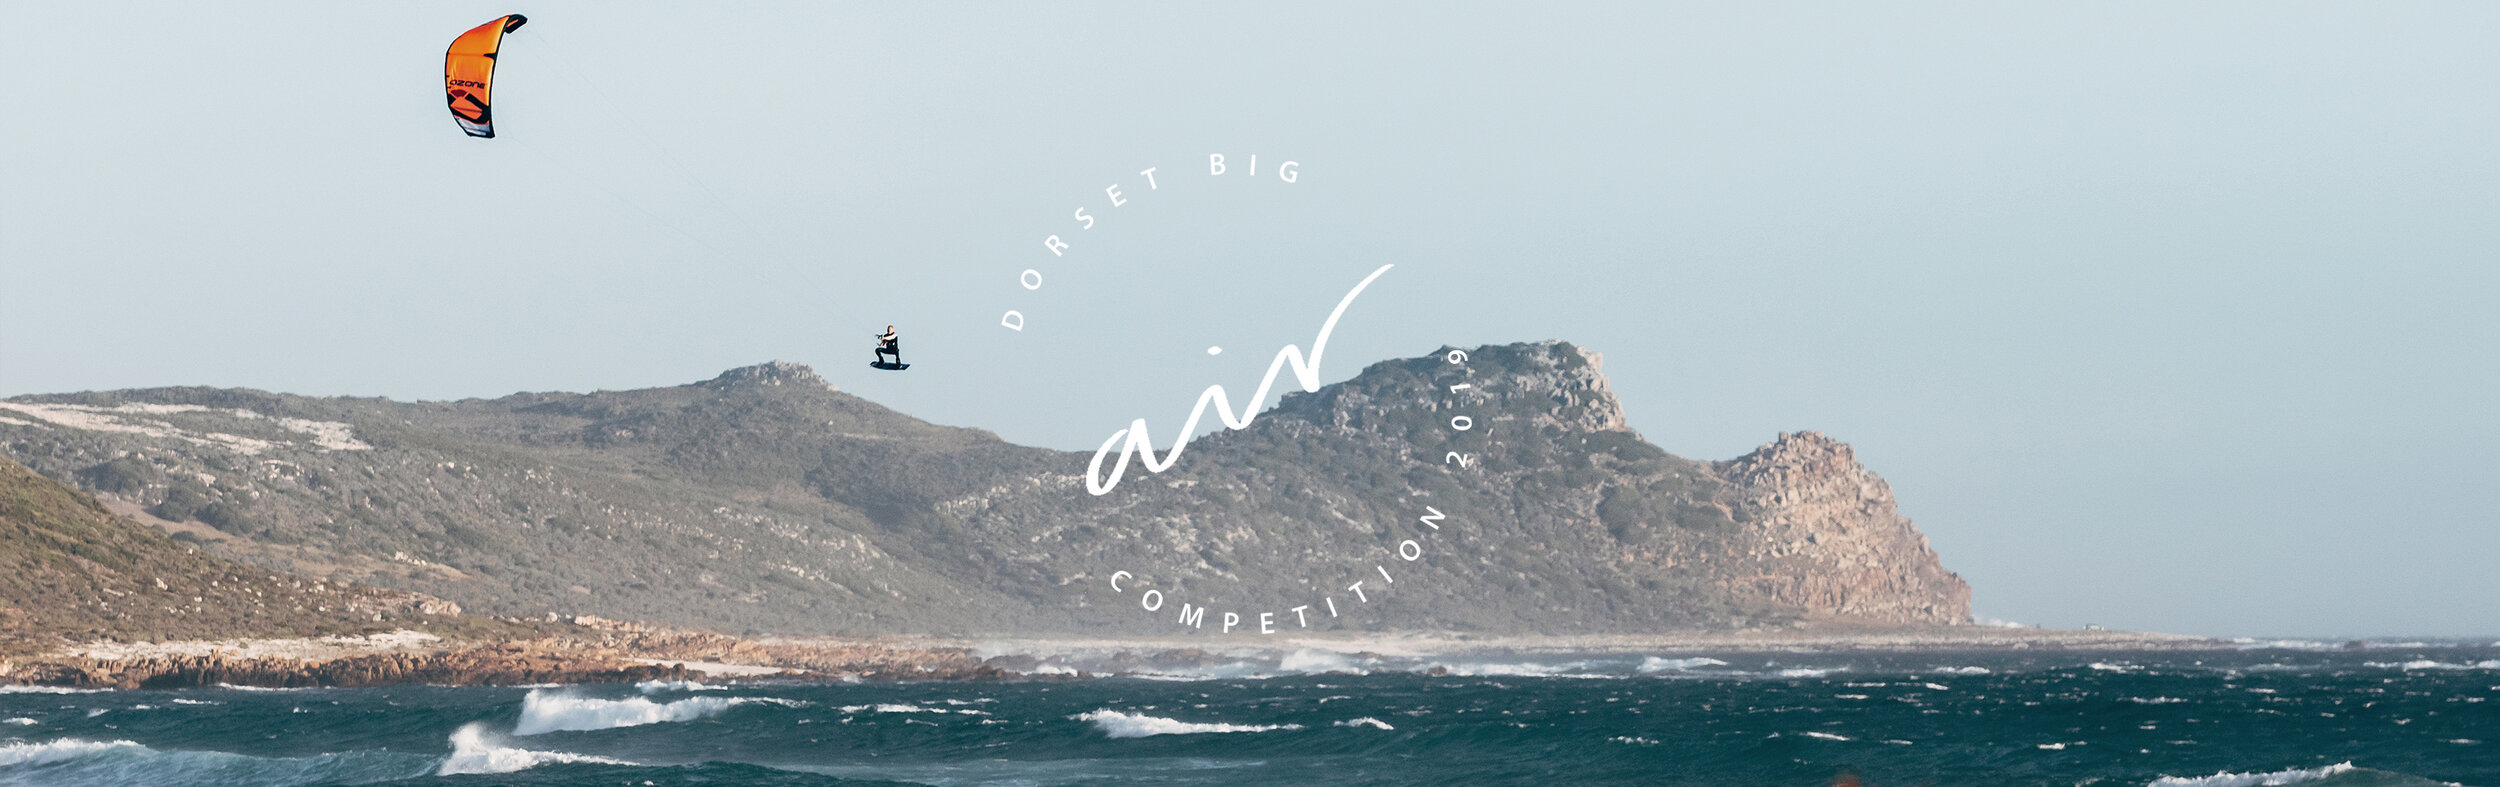 Big_Air_Cover_Photo.jpg